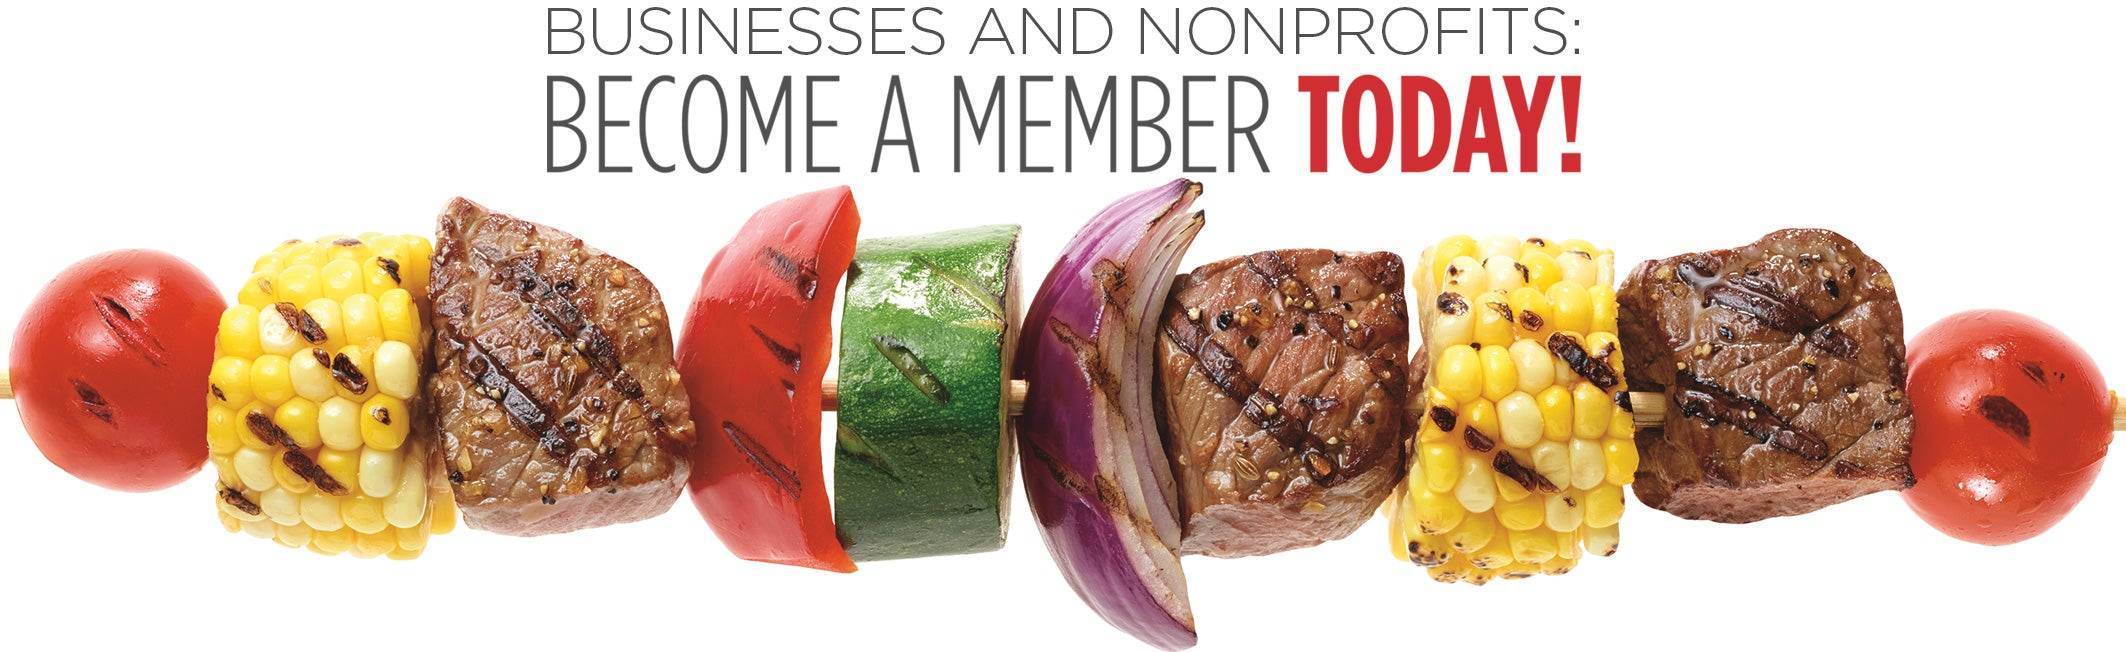 Businesses and Nonprofits: Become A Member Today!